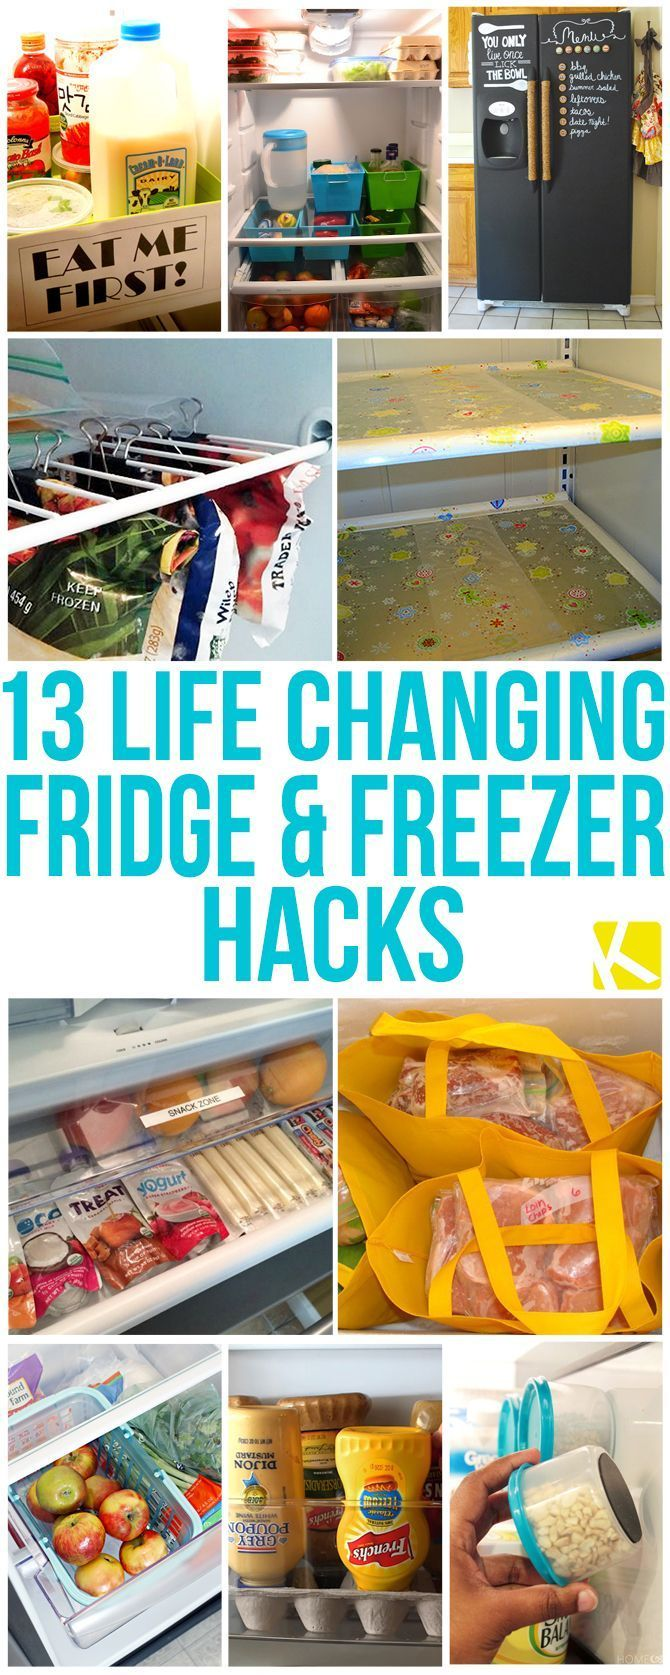 13 Life Changing Fridge and Freezer Hacks. -- These things are Genius!